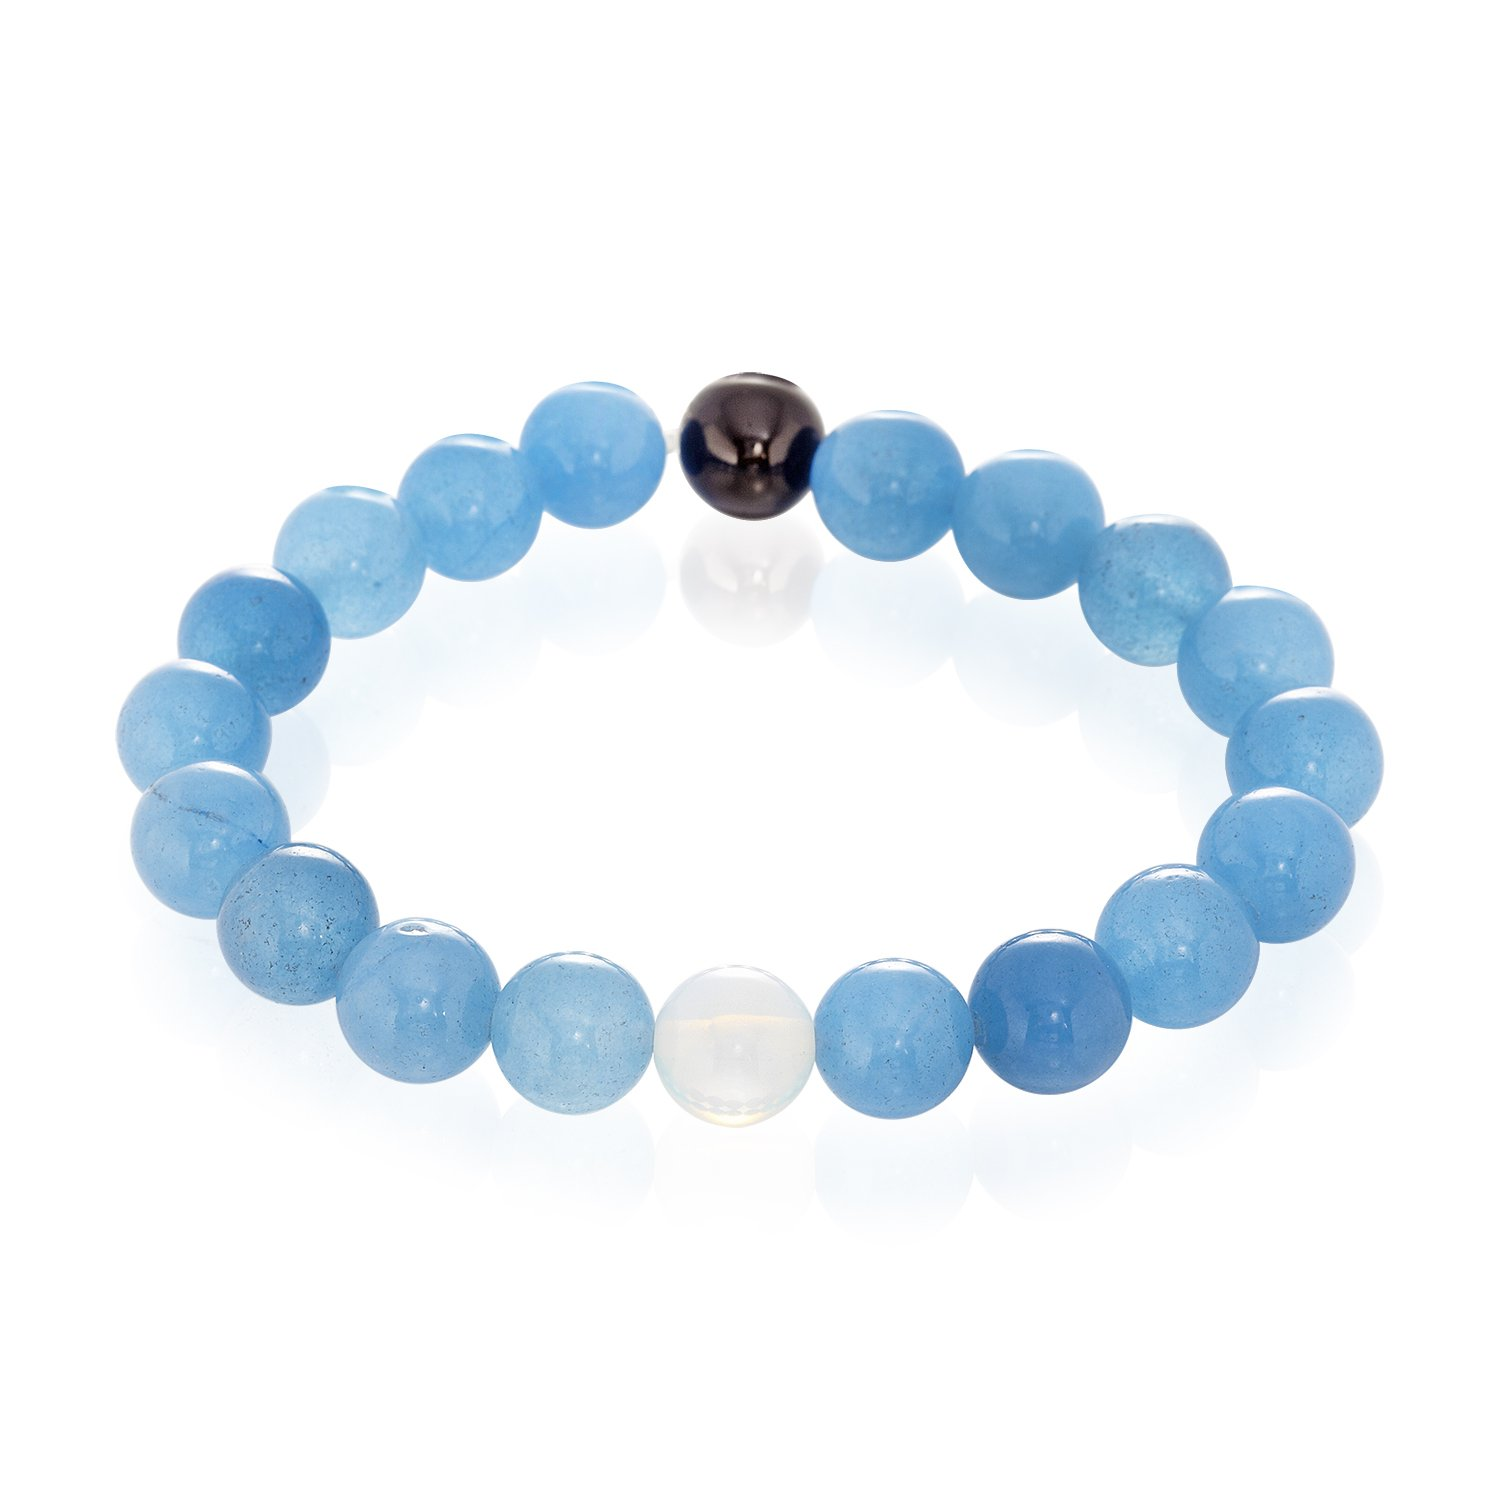 Dan's Jewelers Tibetan Buddhist Bracelet with Blue Healing Energy Crystals, Natural Semi-Precious Stones